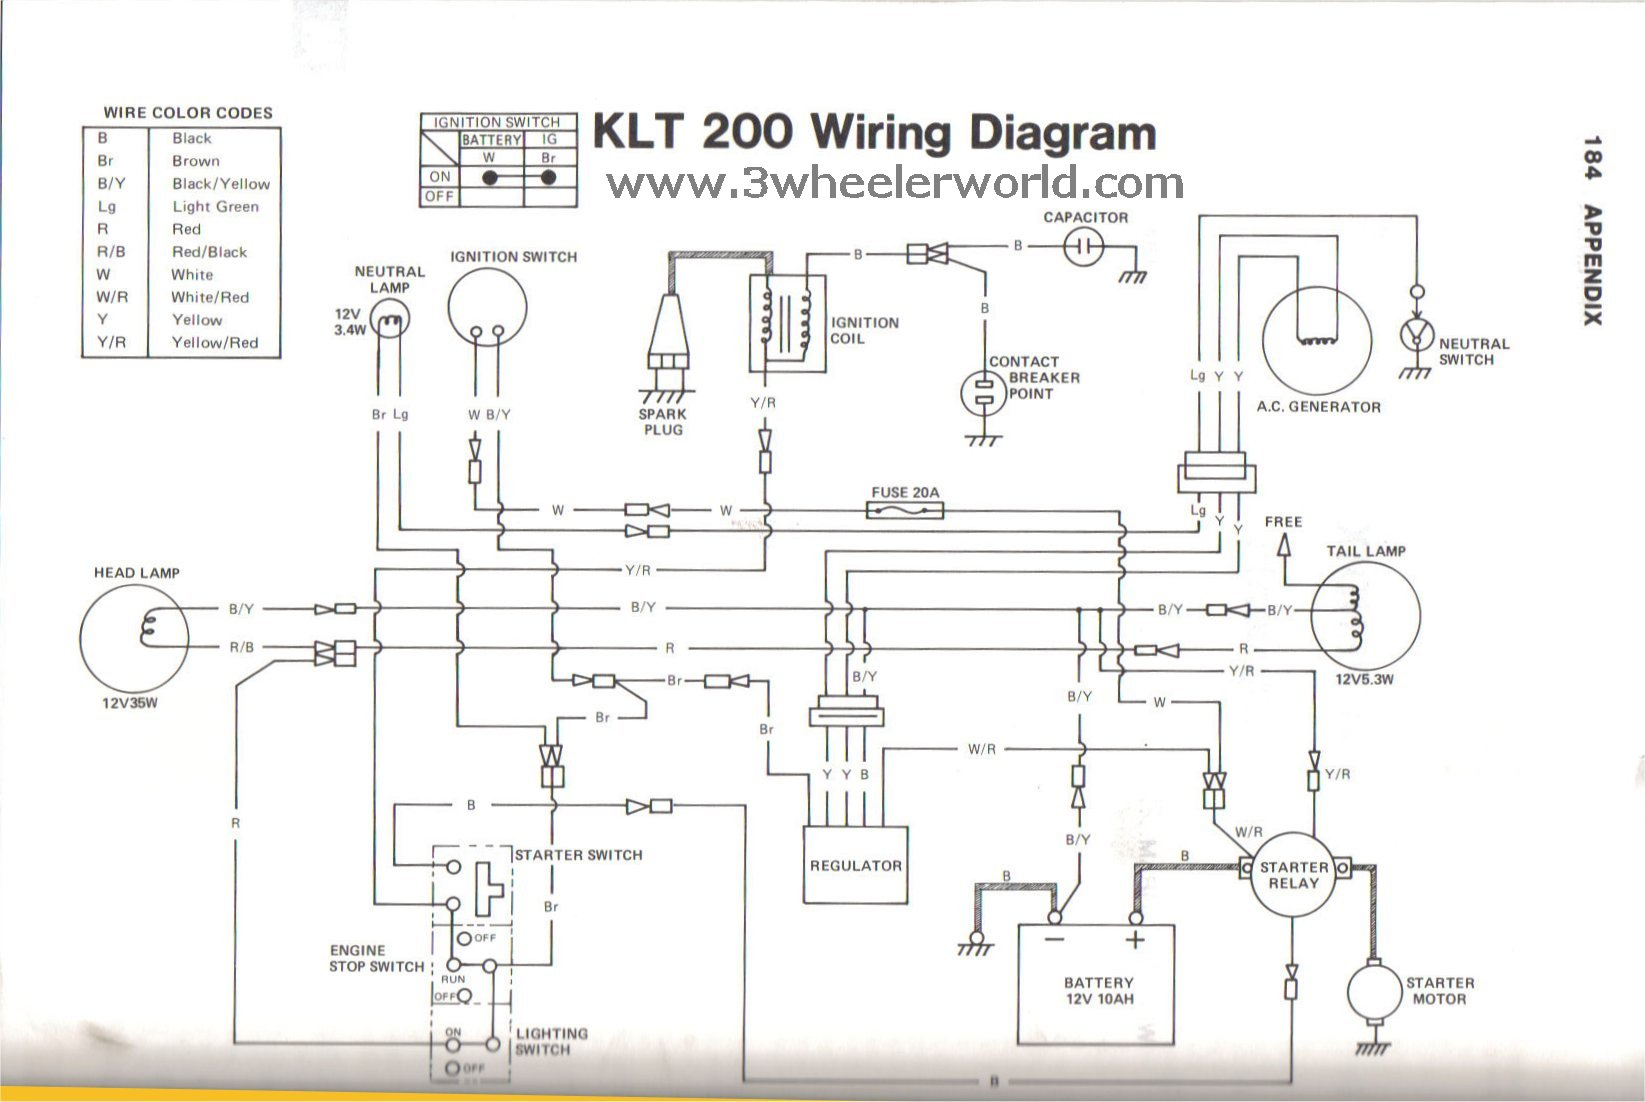 Wire Diagram 2003 Honda Aquatrax Worlds Largest Selection Of Wiring Symbols Circuits Diagrams U2022 Rh Amdrums Co Uk